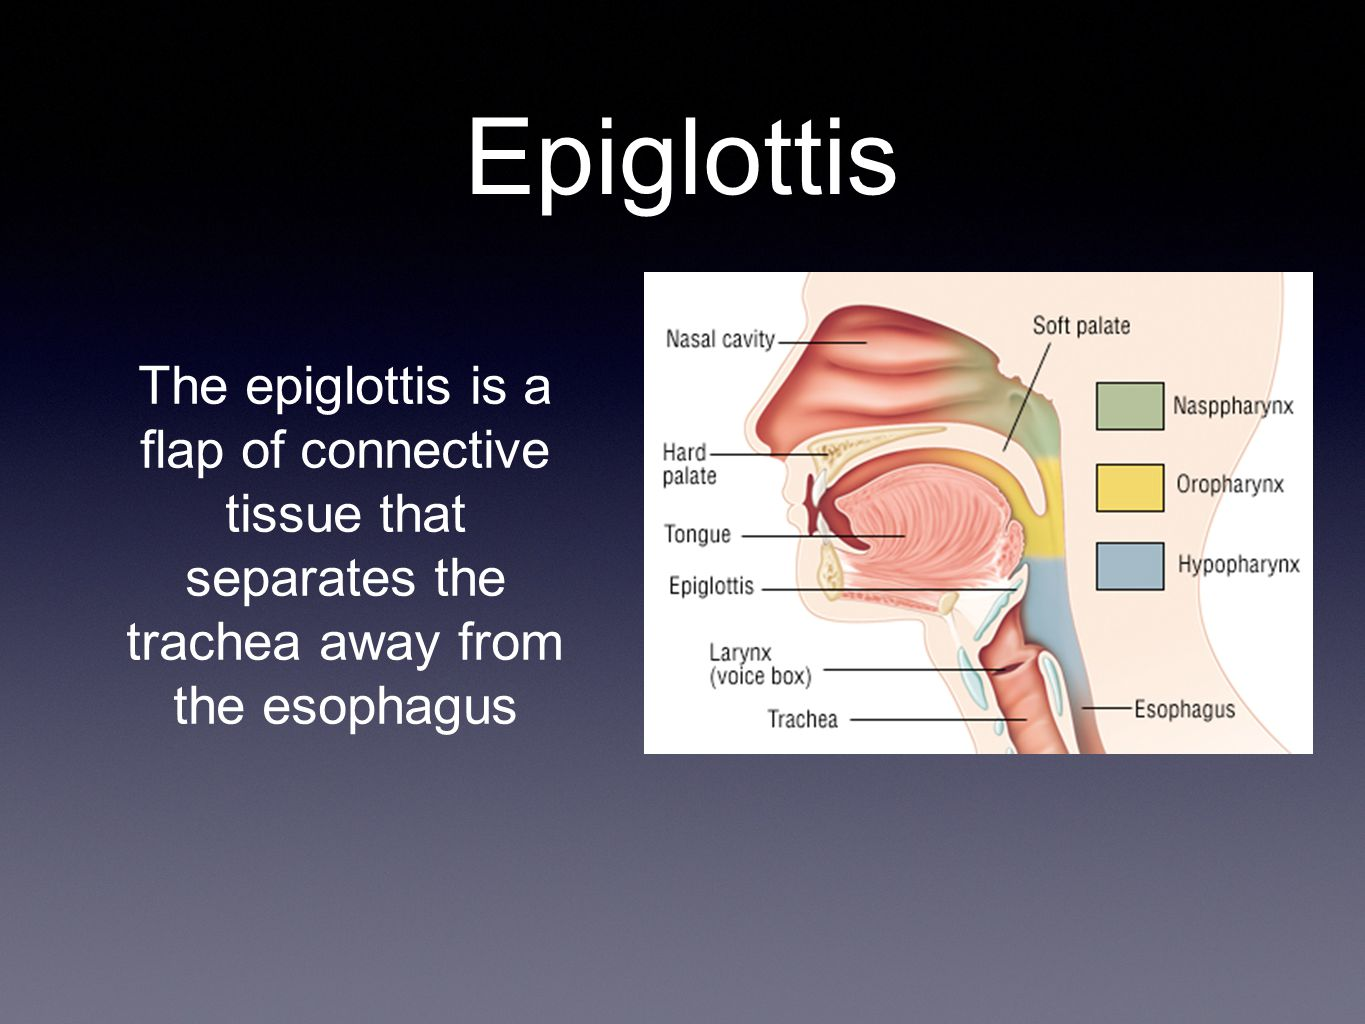 Epiglottis The epiglottis is a flap of connective tissue that separates the trachea away from the esophagus.